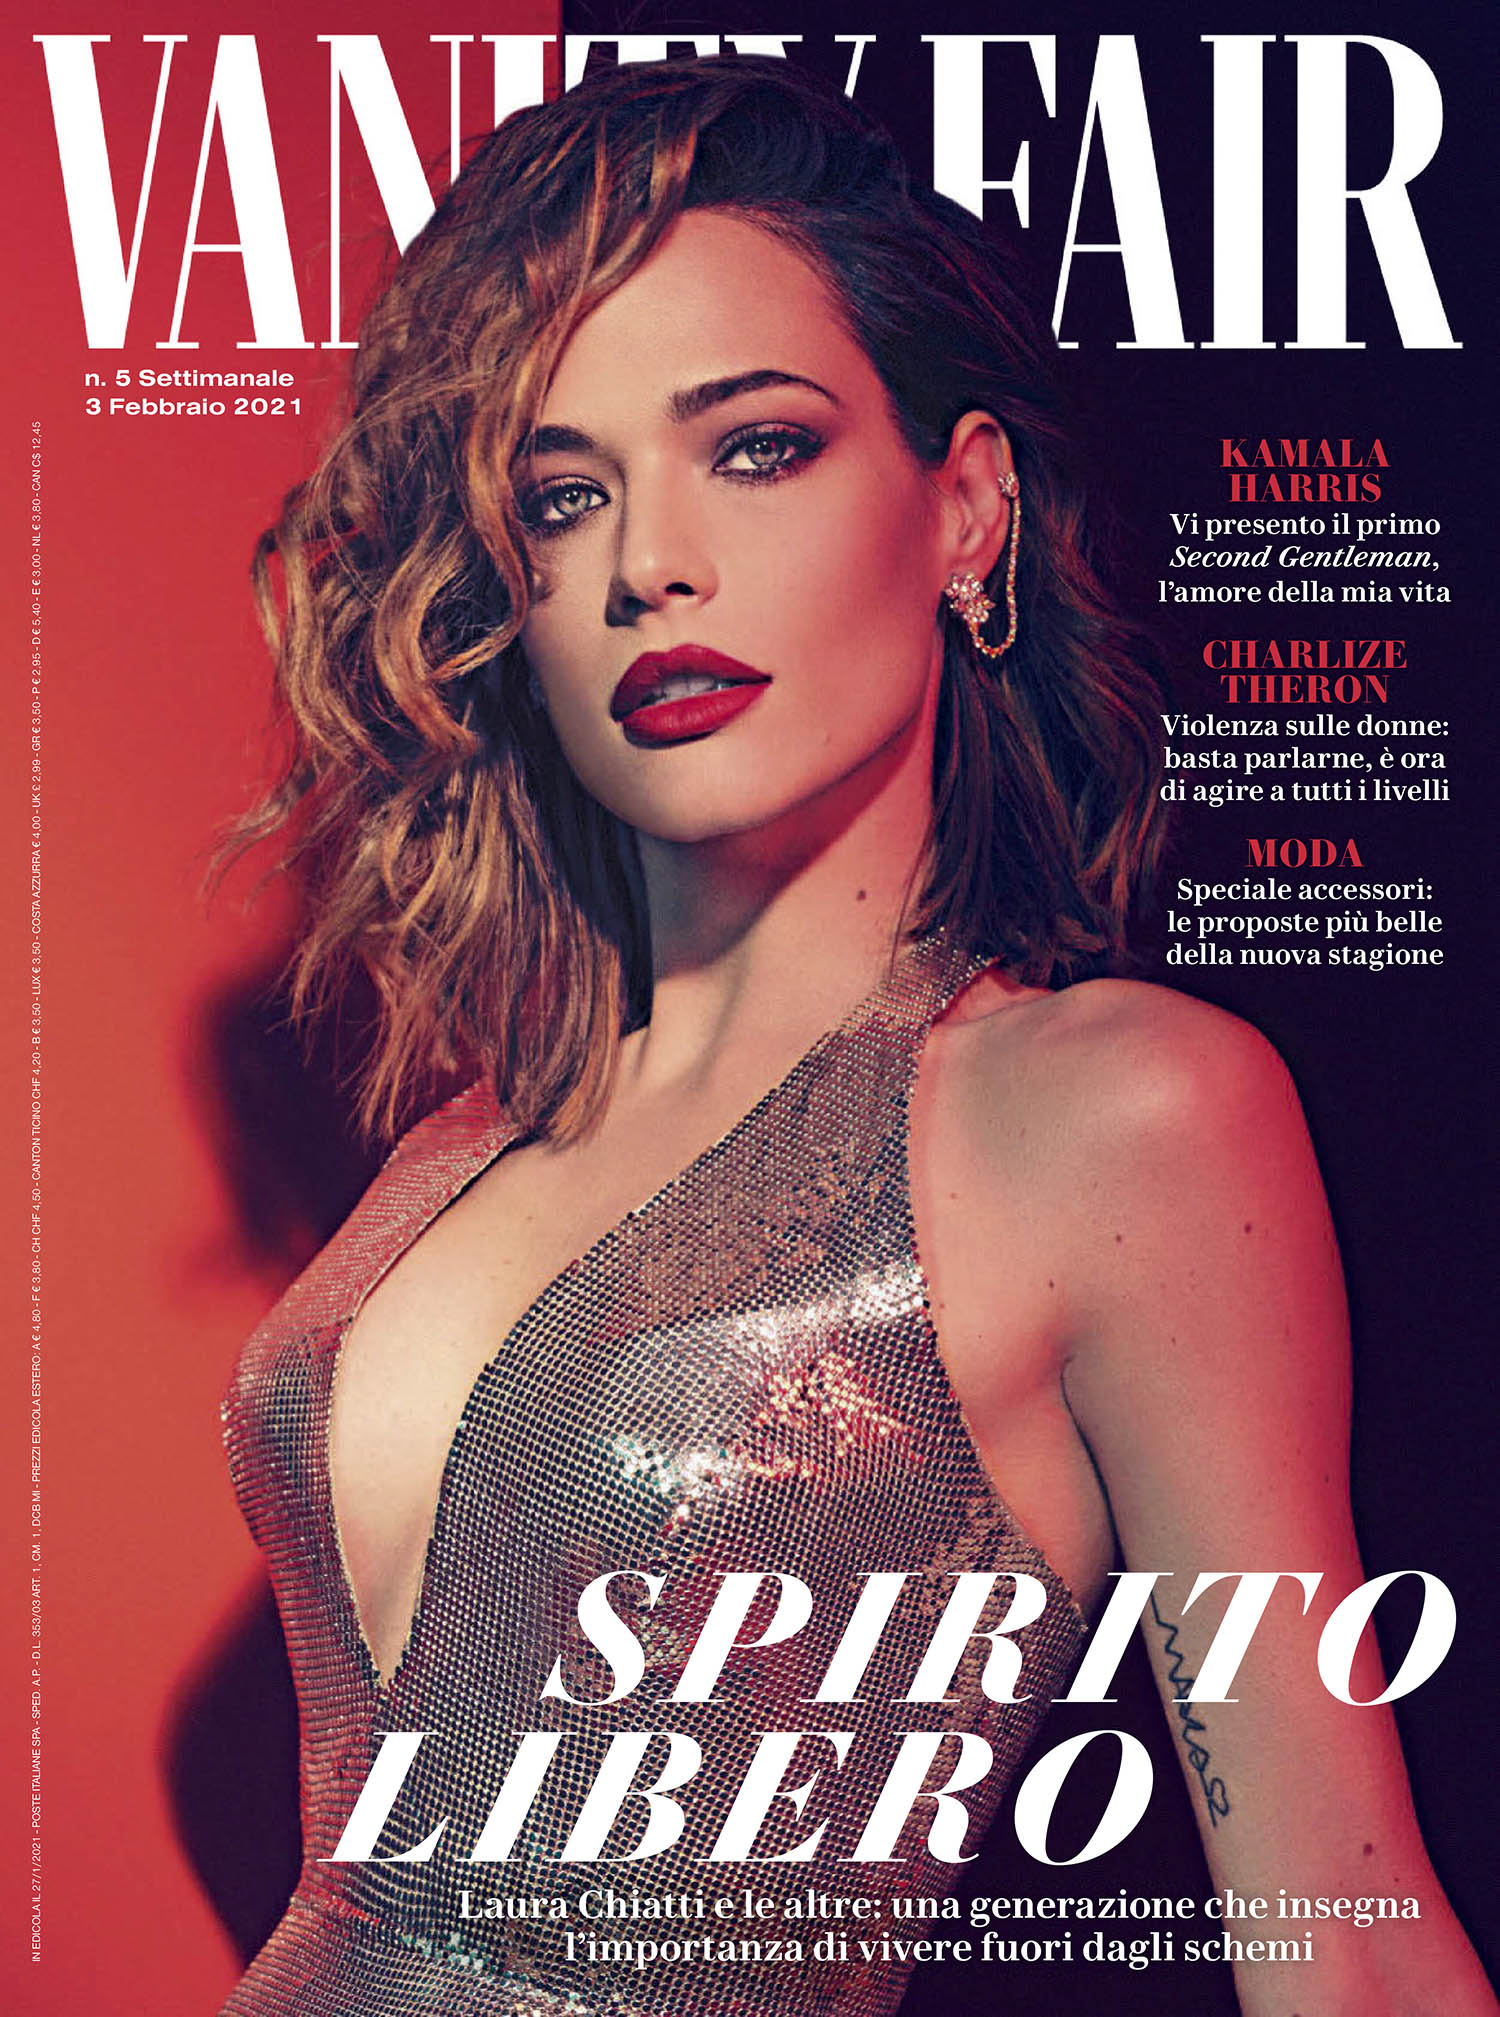 Laura Chiatti covers Vanity Fair Italia February 3rd, 2021 by Joseph Cardo